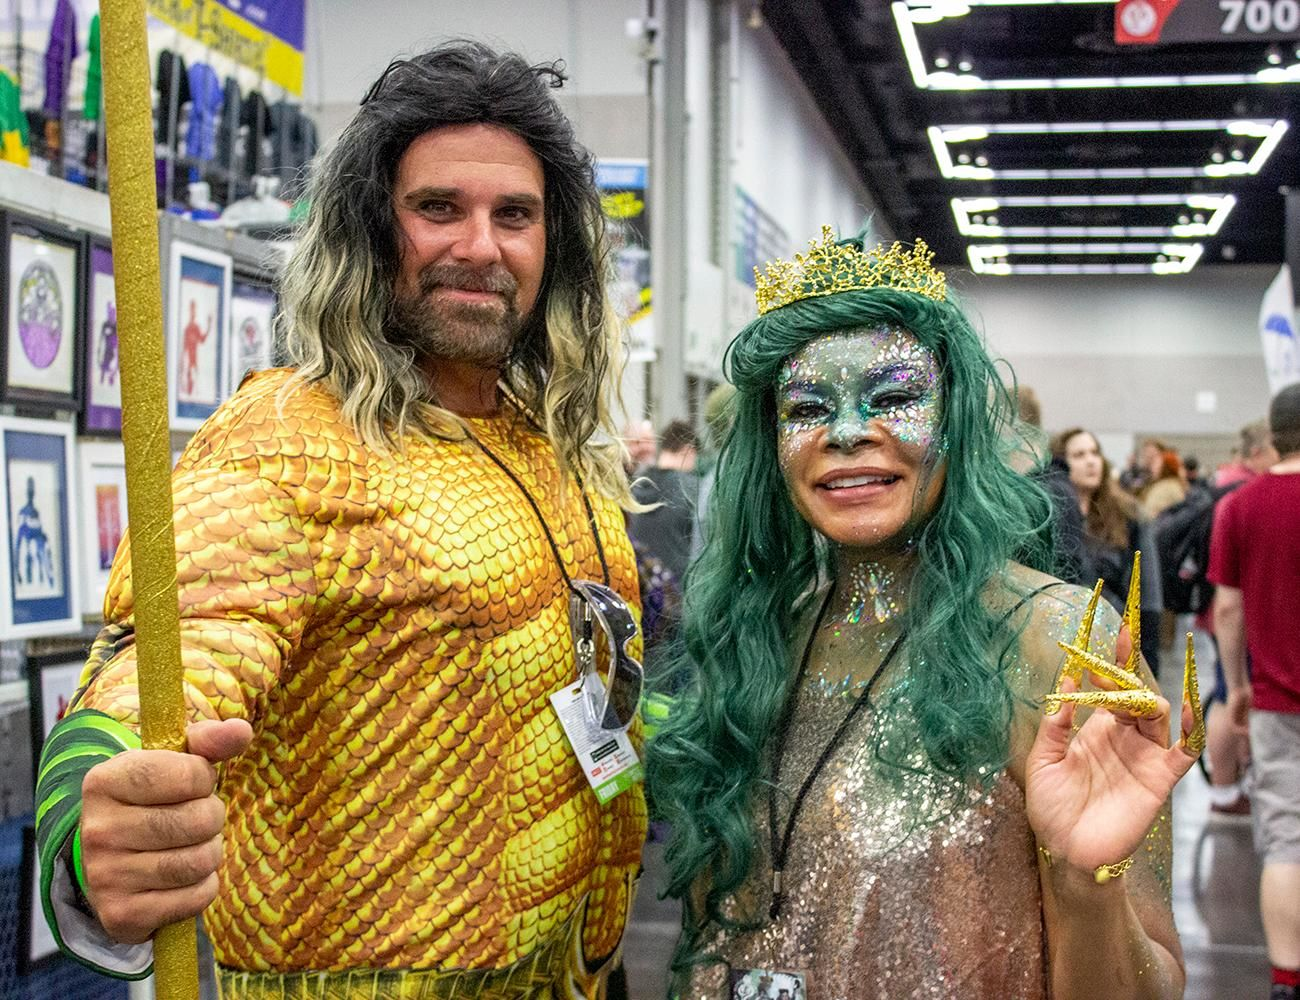 The Rose City Comic Con returned to the Oregon Convention Center on Friday, Sept. 13, 2019. Thousands dressed in cosplay to celebrate all things pop culture. The event continues through the weekend and will feature several celebrity guests. Photo by Amanda Butt